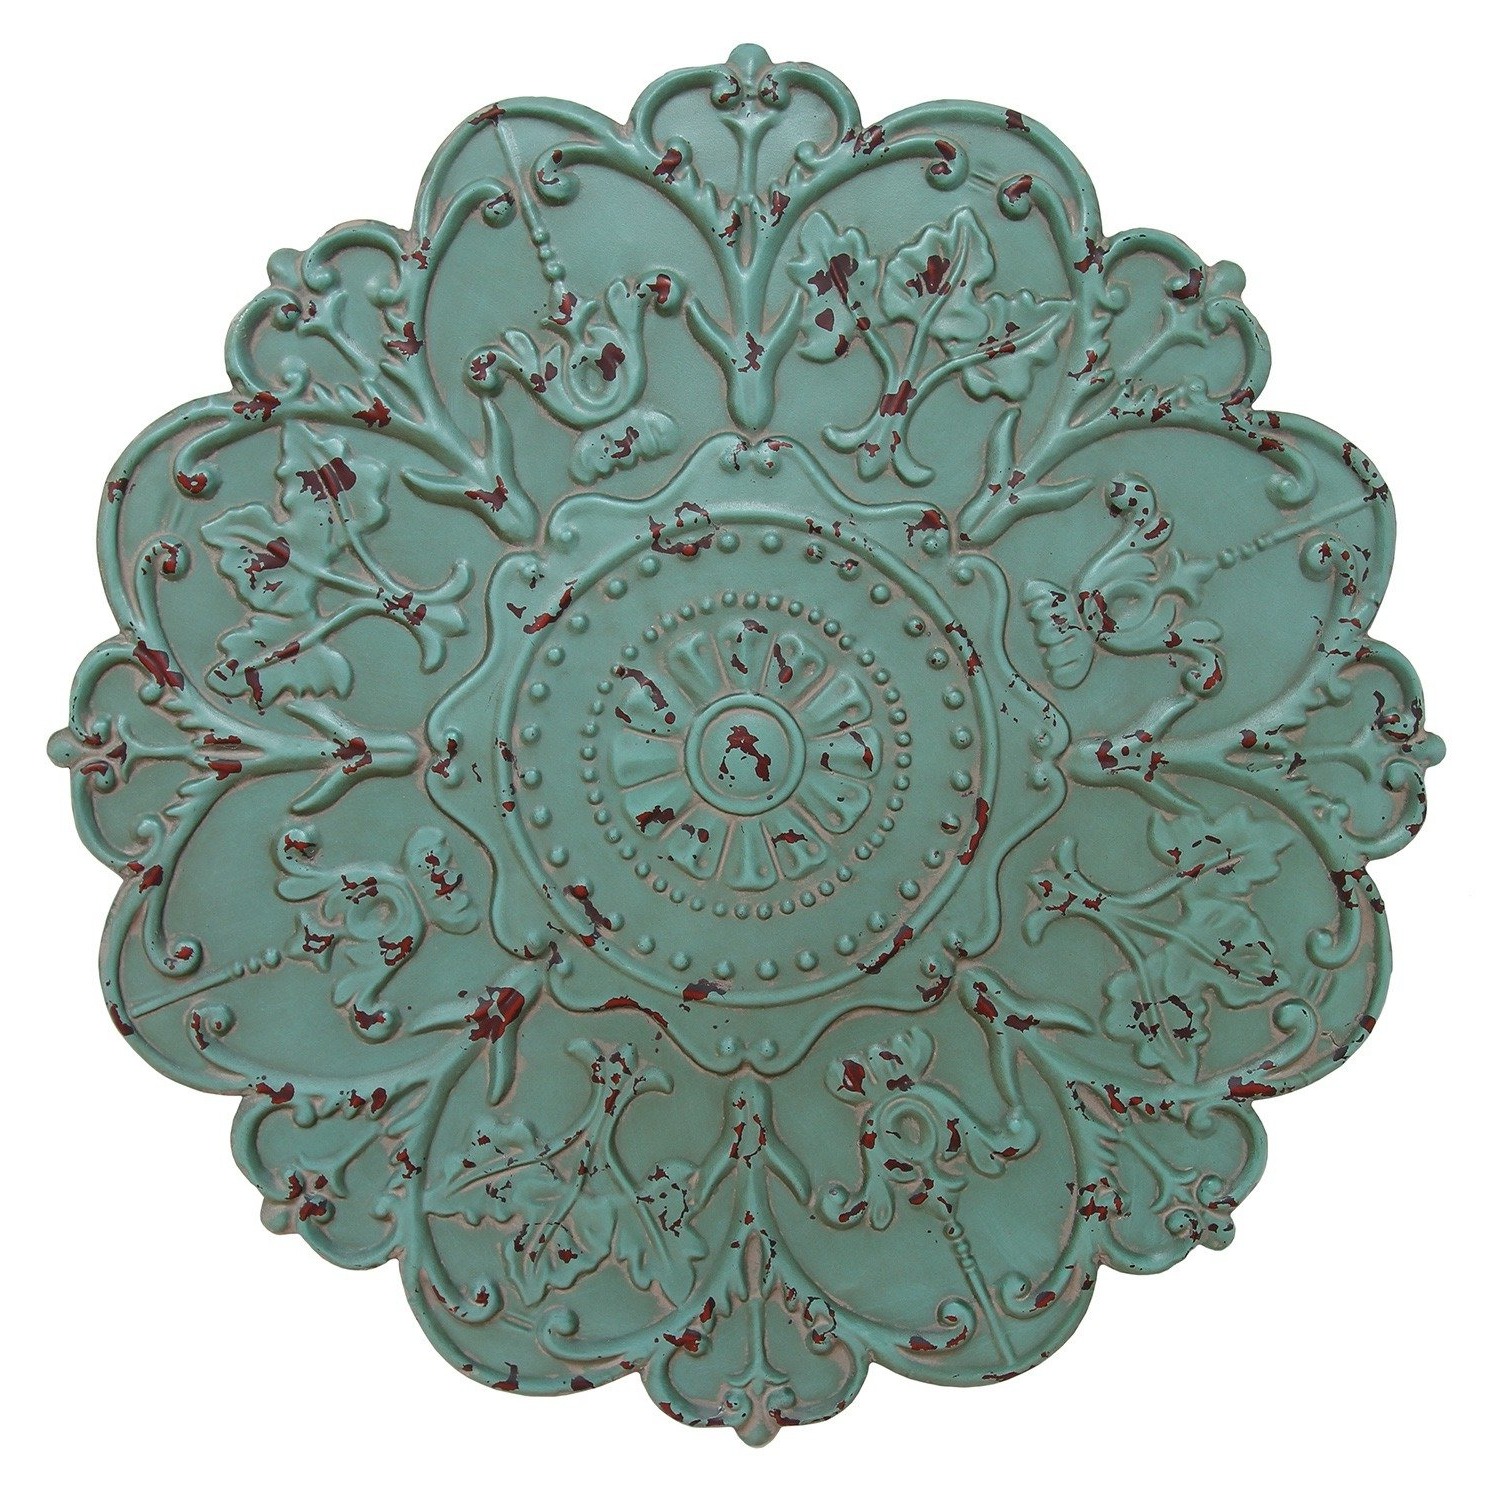 Shabby Medallion Wall Decor Regarding Most Current Amazon: Stratton Home Decor Shabby Medallion Wall Decor: Home (View 3 of 20)